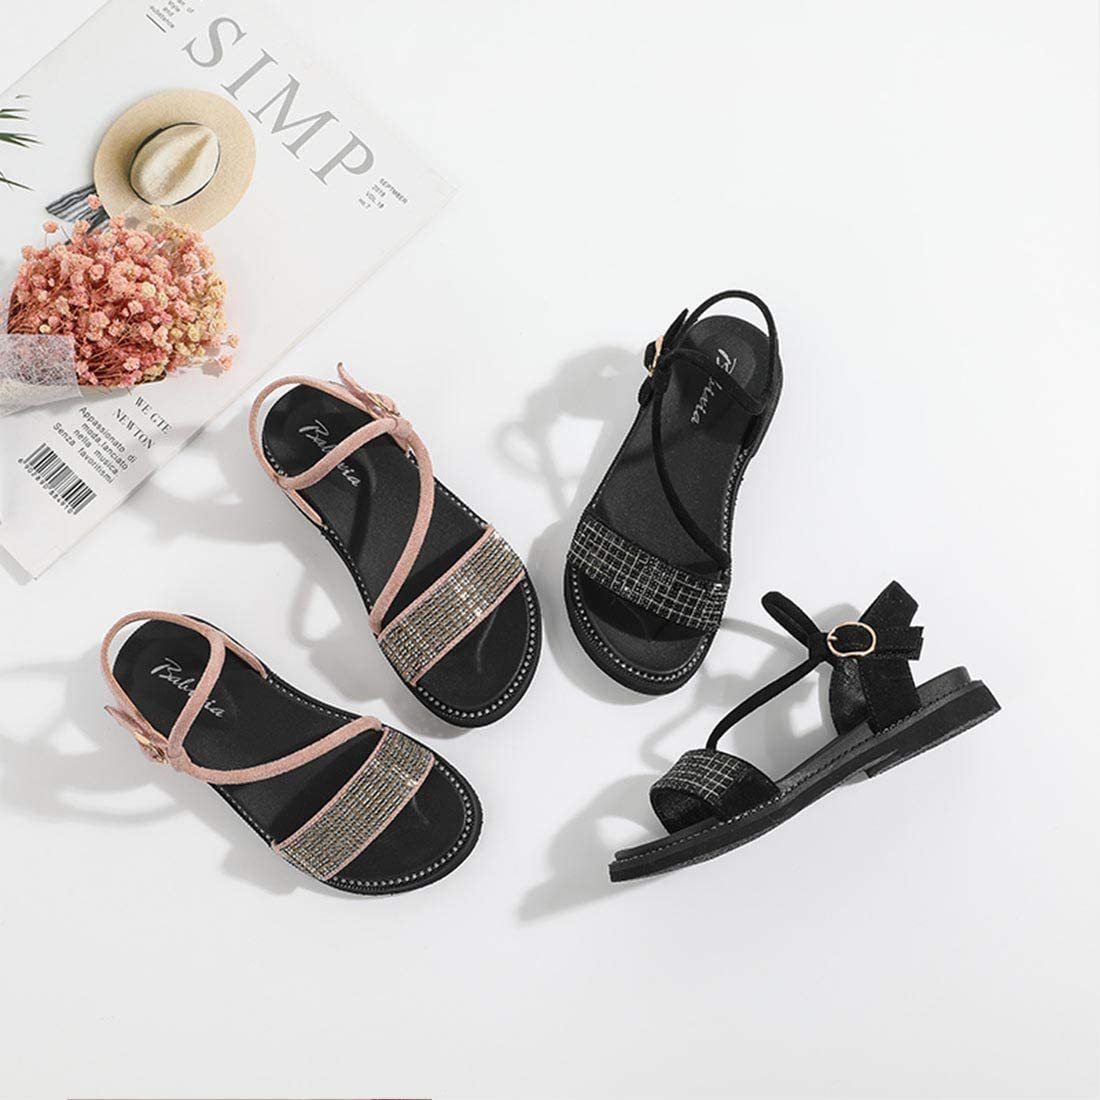 JTENGYAO Girls Gladiator Flat Sandals Summer Open Toe Ankle Strap Beach Shoes